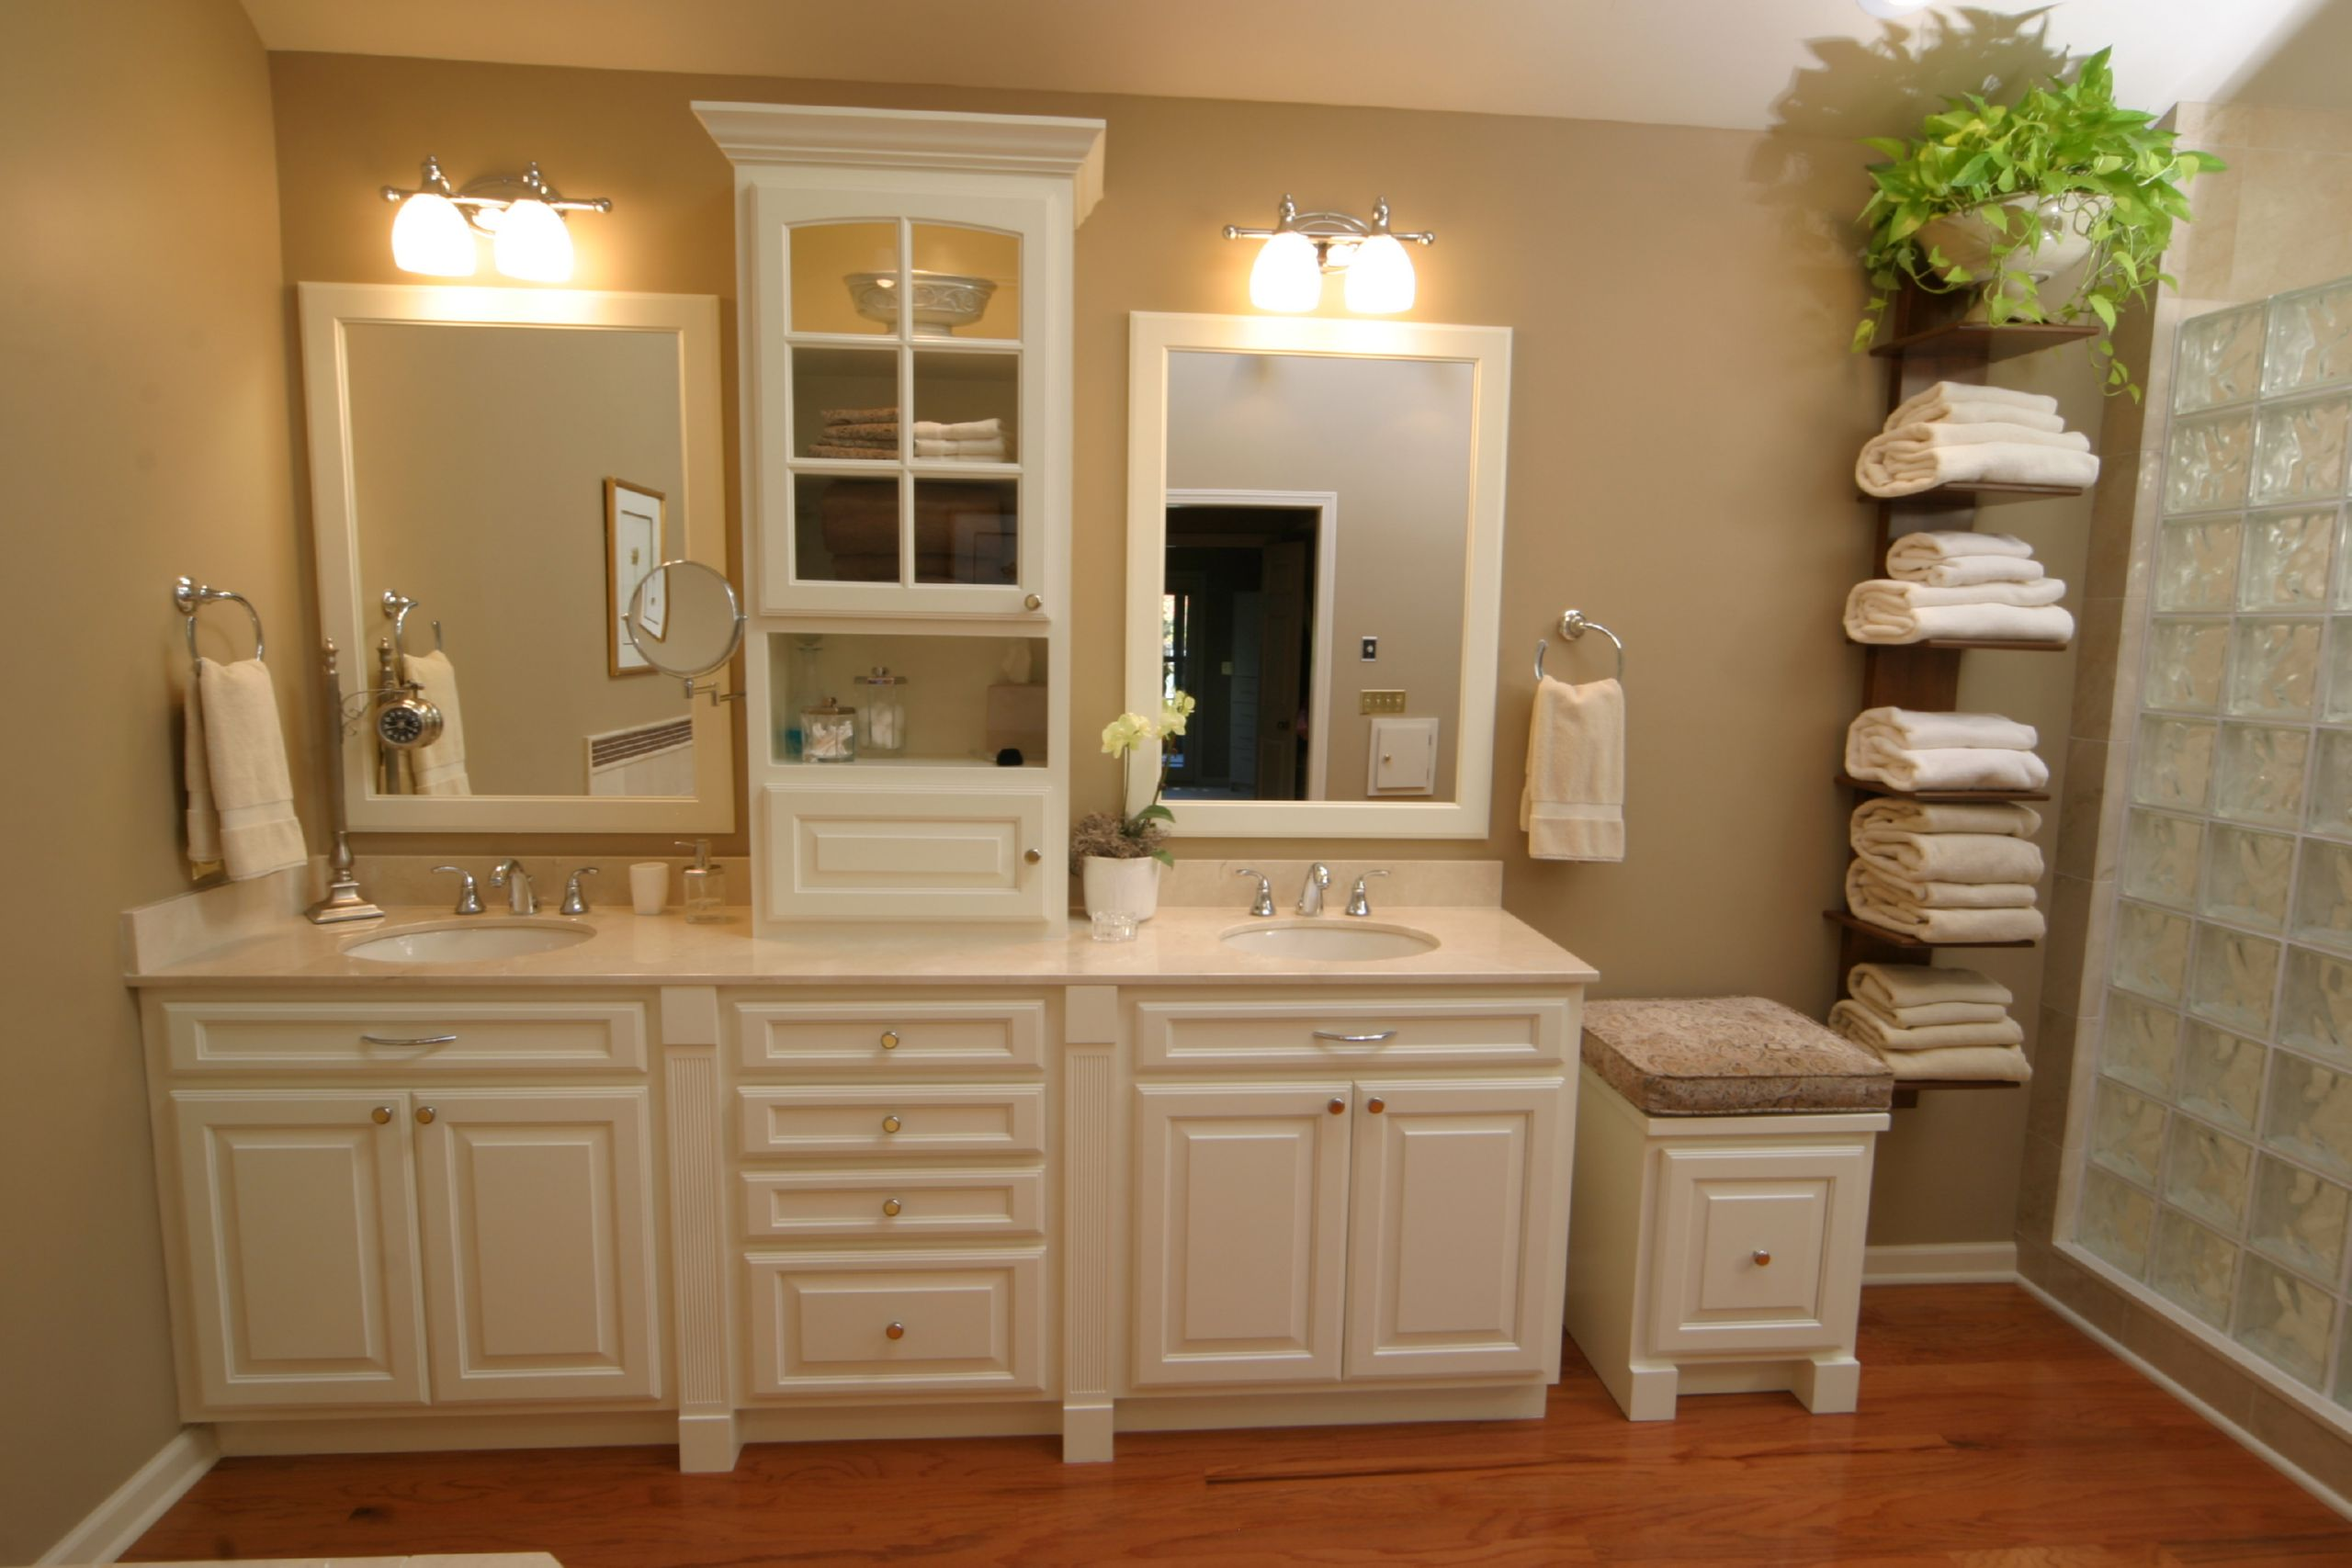 Bathroom remodeling bath remodel contractor for Remodeled bathrooms